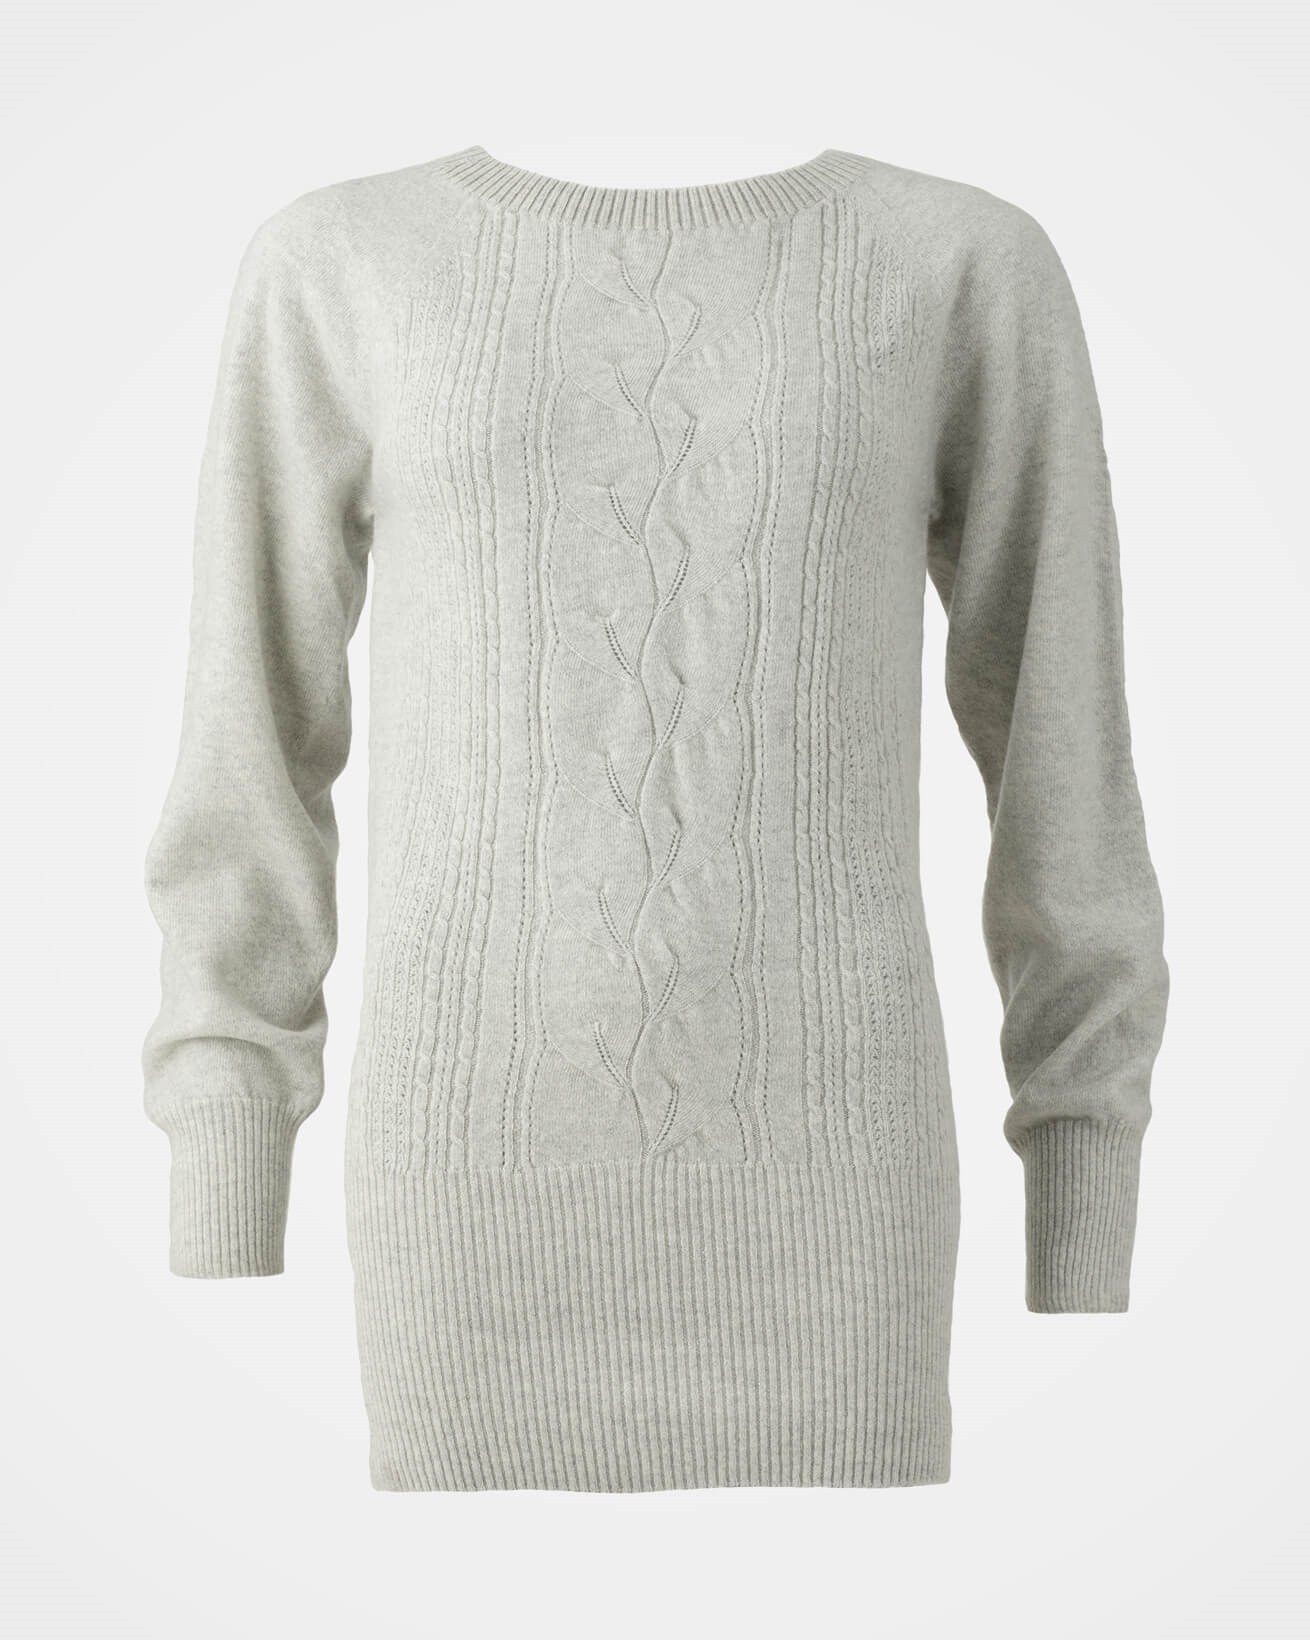 Lace Cable Supersoft Jumper - Size Extra Small - Fossil - 1627